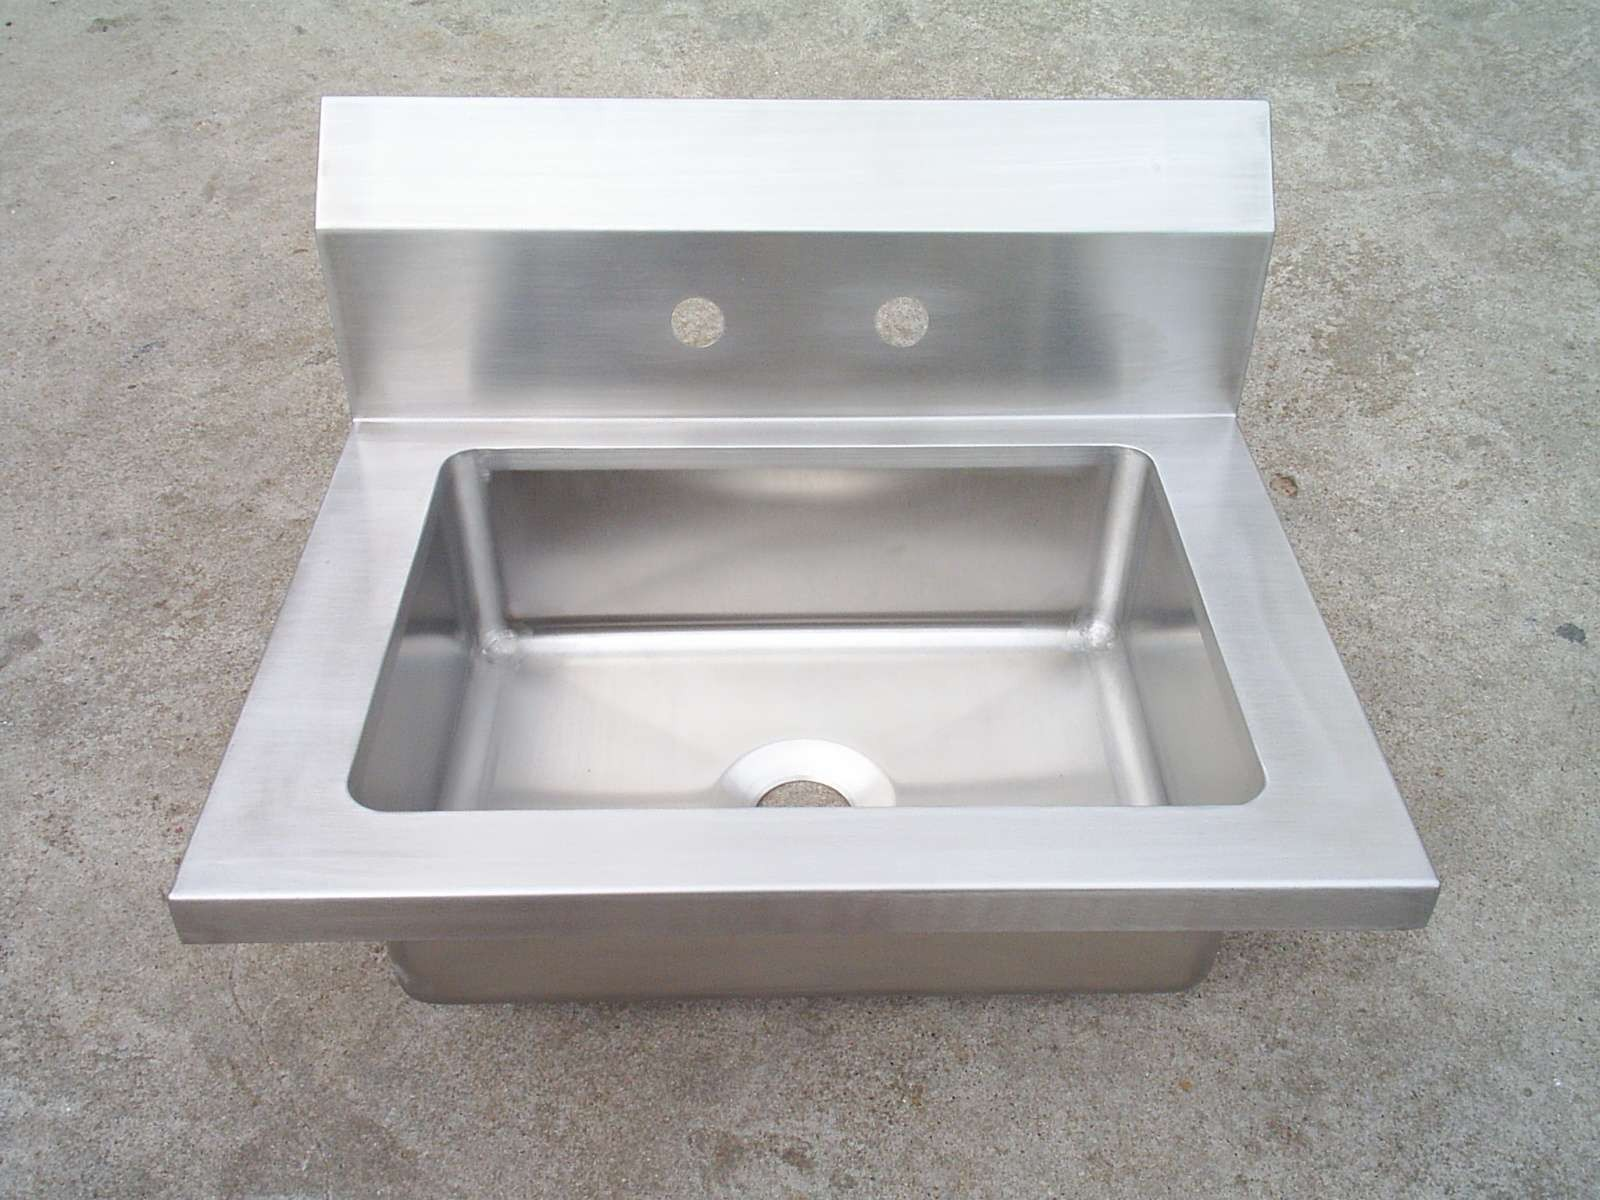 Stainless Steel Welding Hand Sink with 4